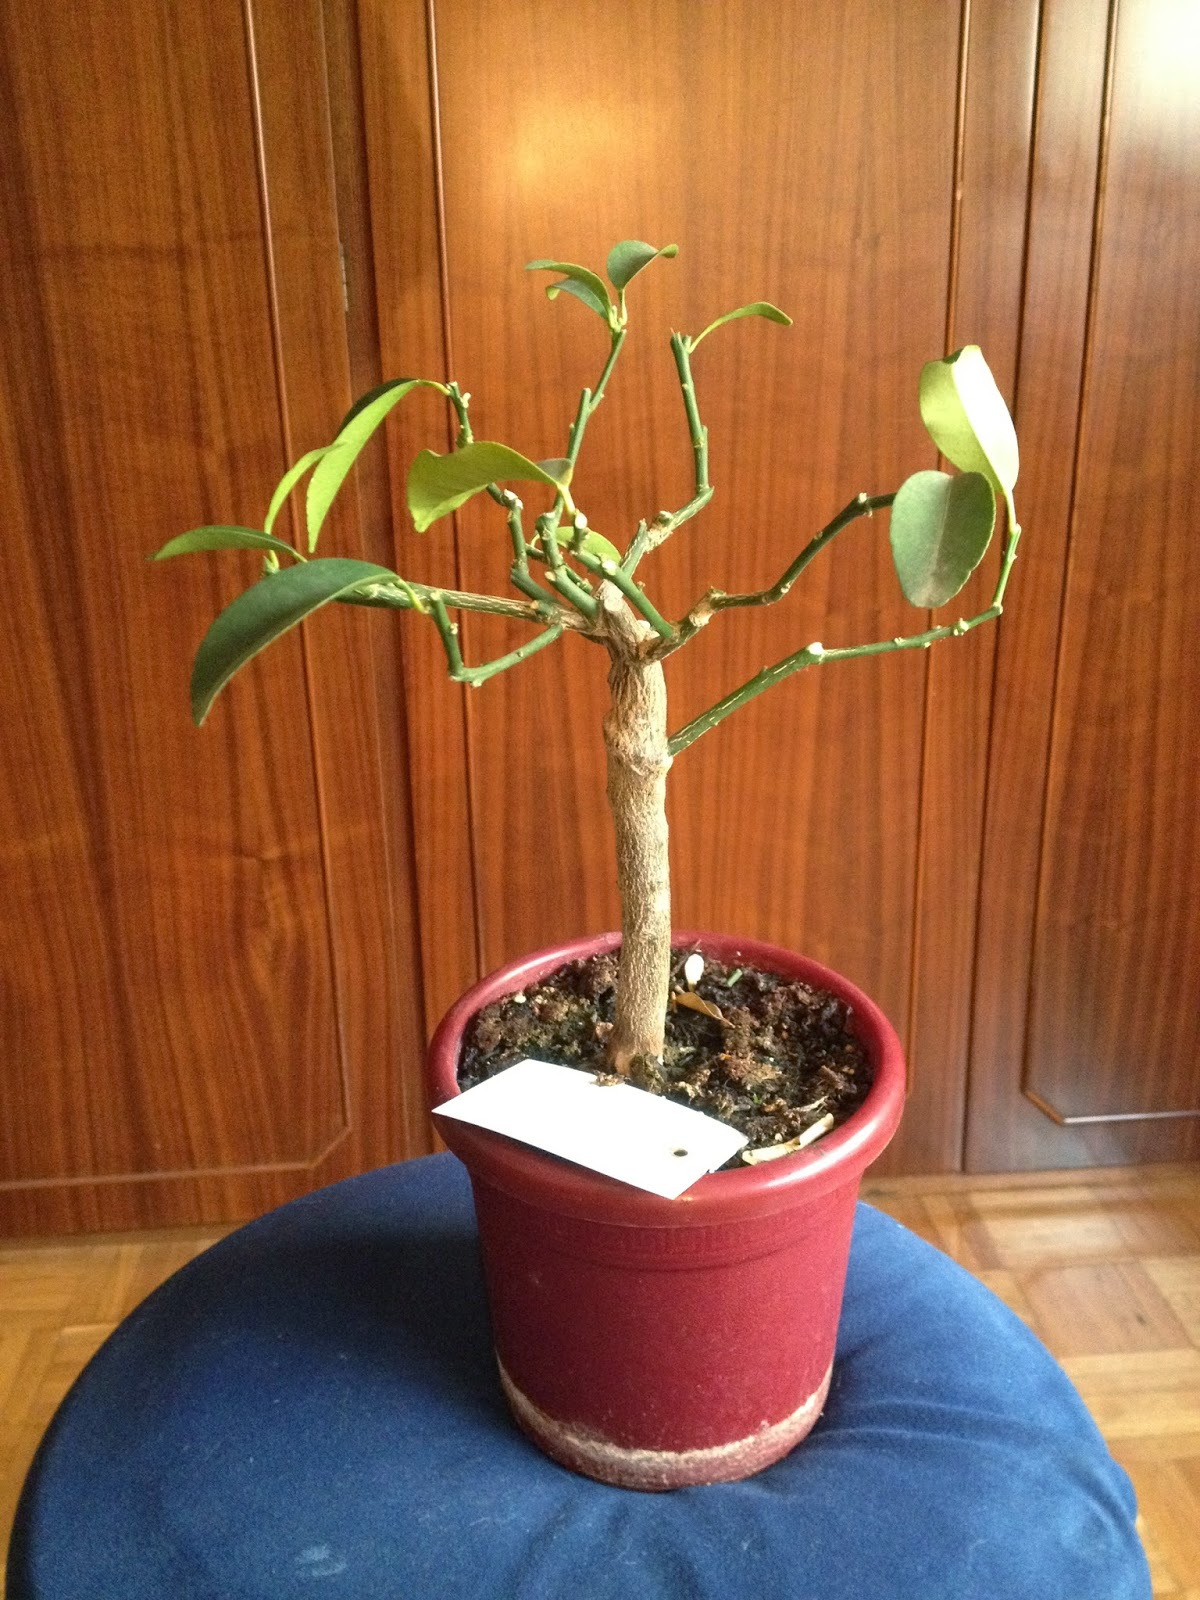 Bonsai Quando Posso Meet The Kumquat